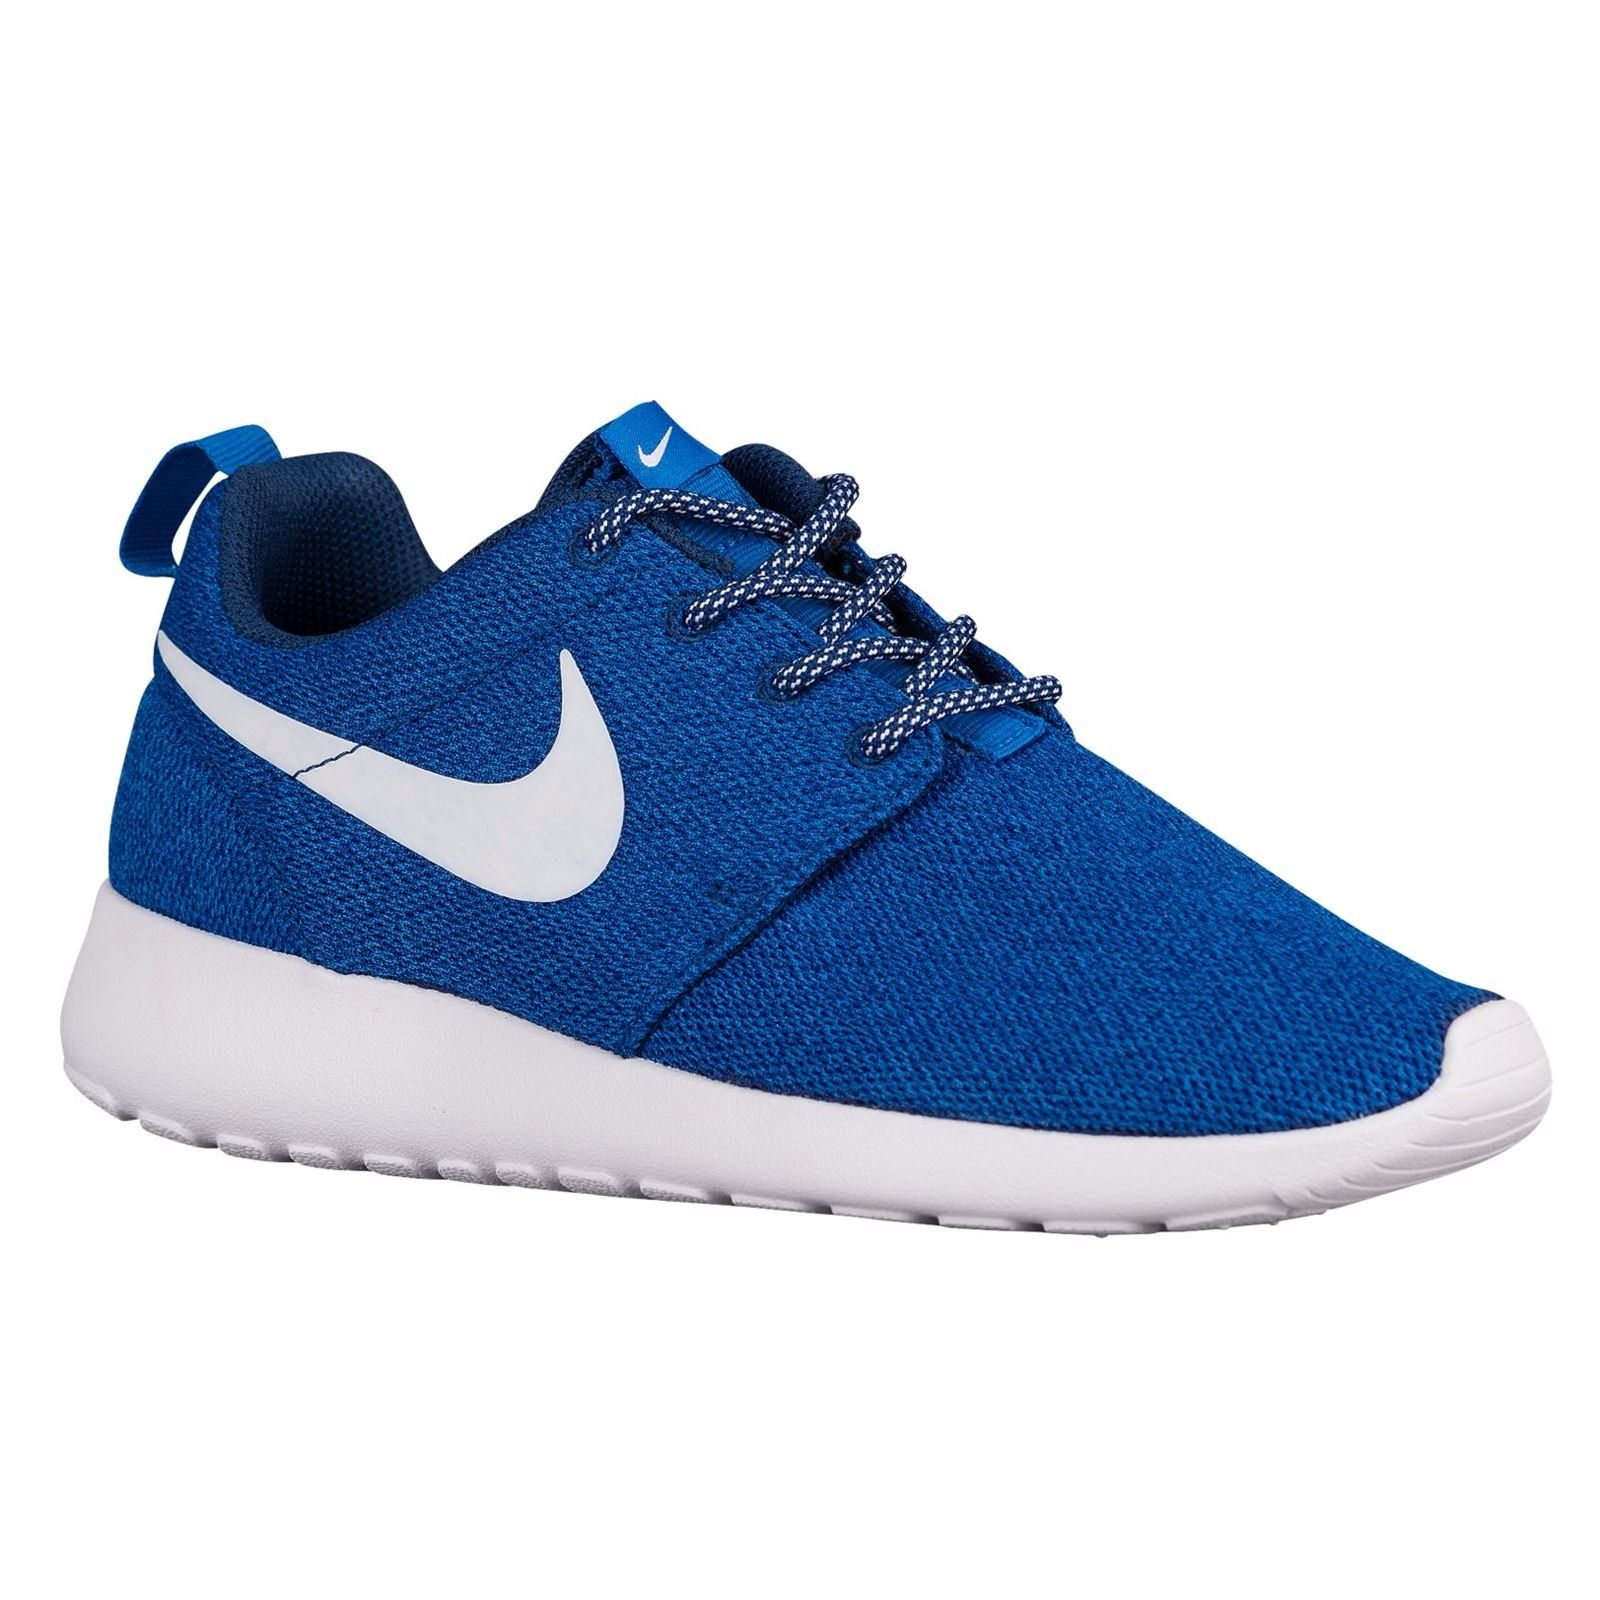 267503999ee9 Nike Women s Roshe One Coastal Blue White Blue Spark Running Shoe 8 Women  US. Removable inlaysole. Super Ventilation. Light foam sole unit.